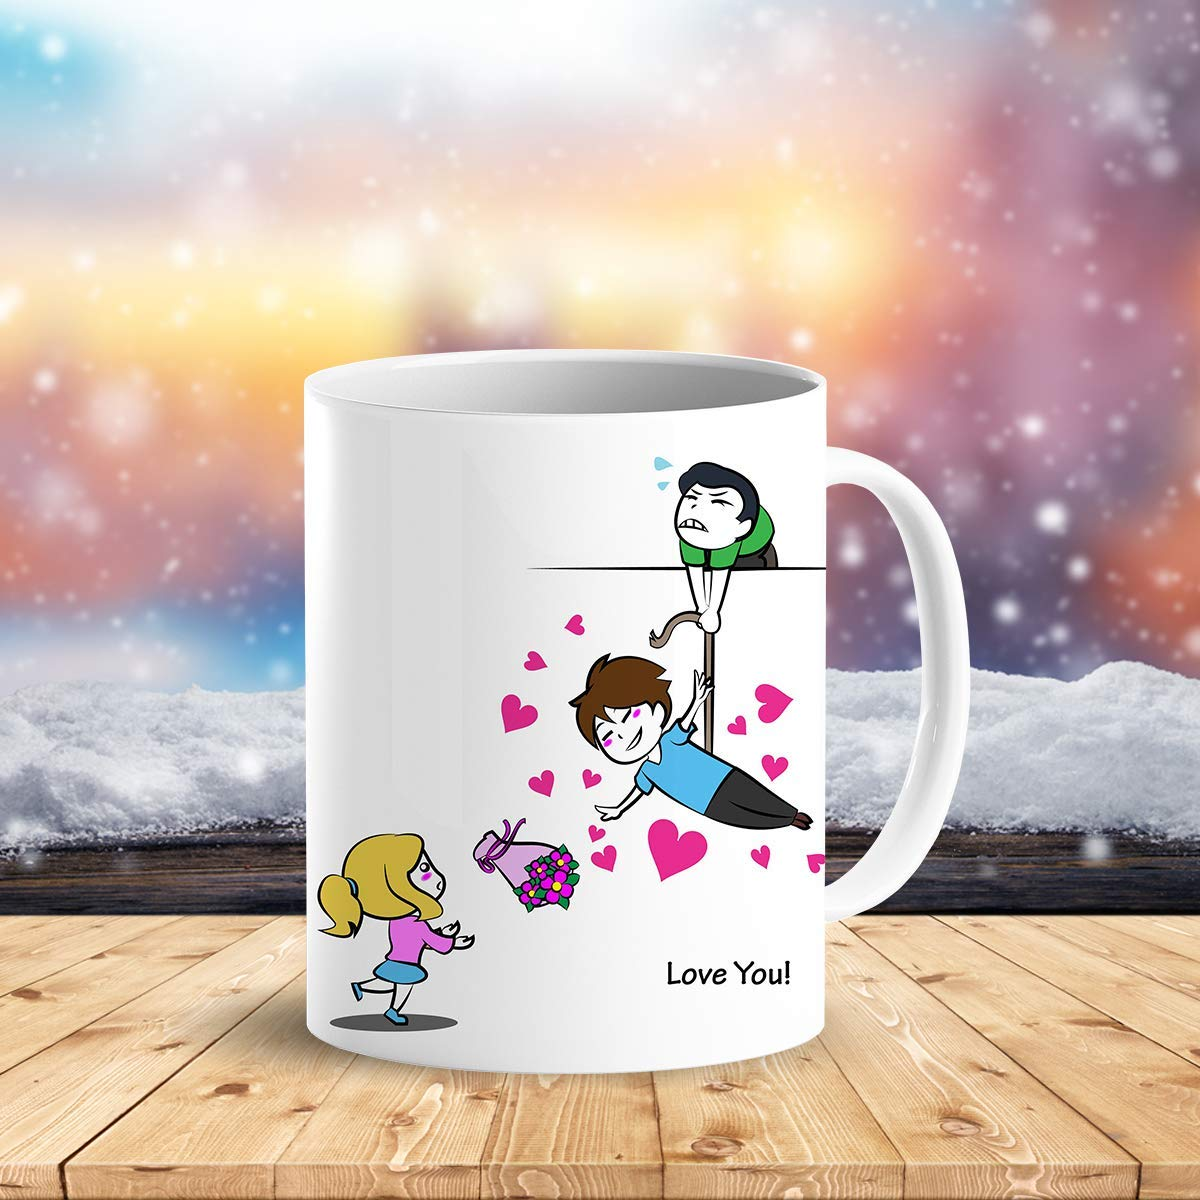 Heat Sensitive Color Changing Coffee Mug Funny Coffee Cup Flying Lovely Cartoon Couple Design Funny Gift Idea B07D21S68R 2